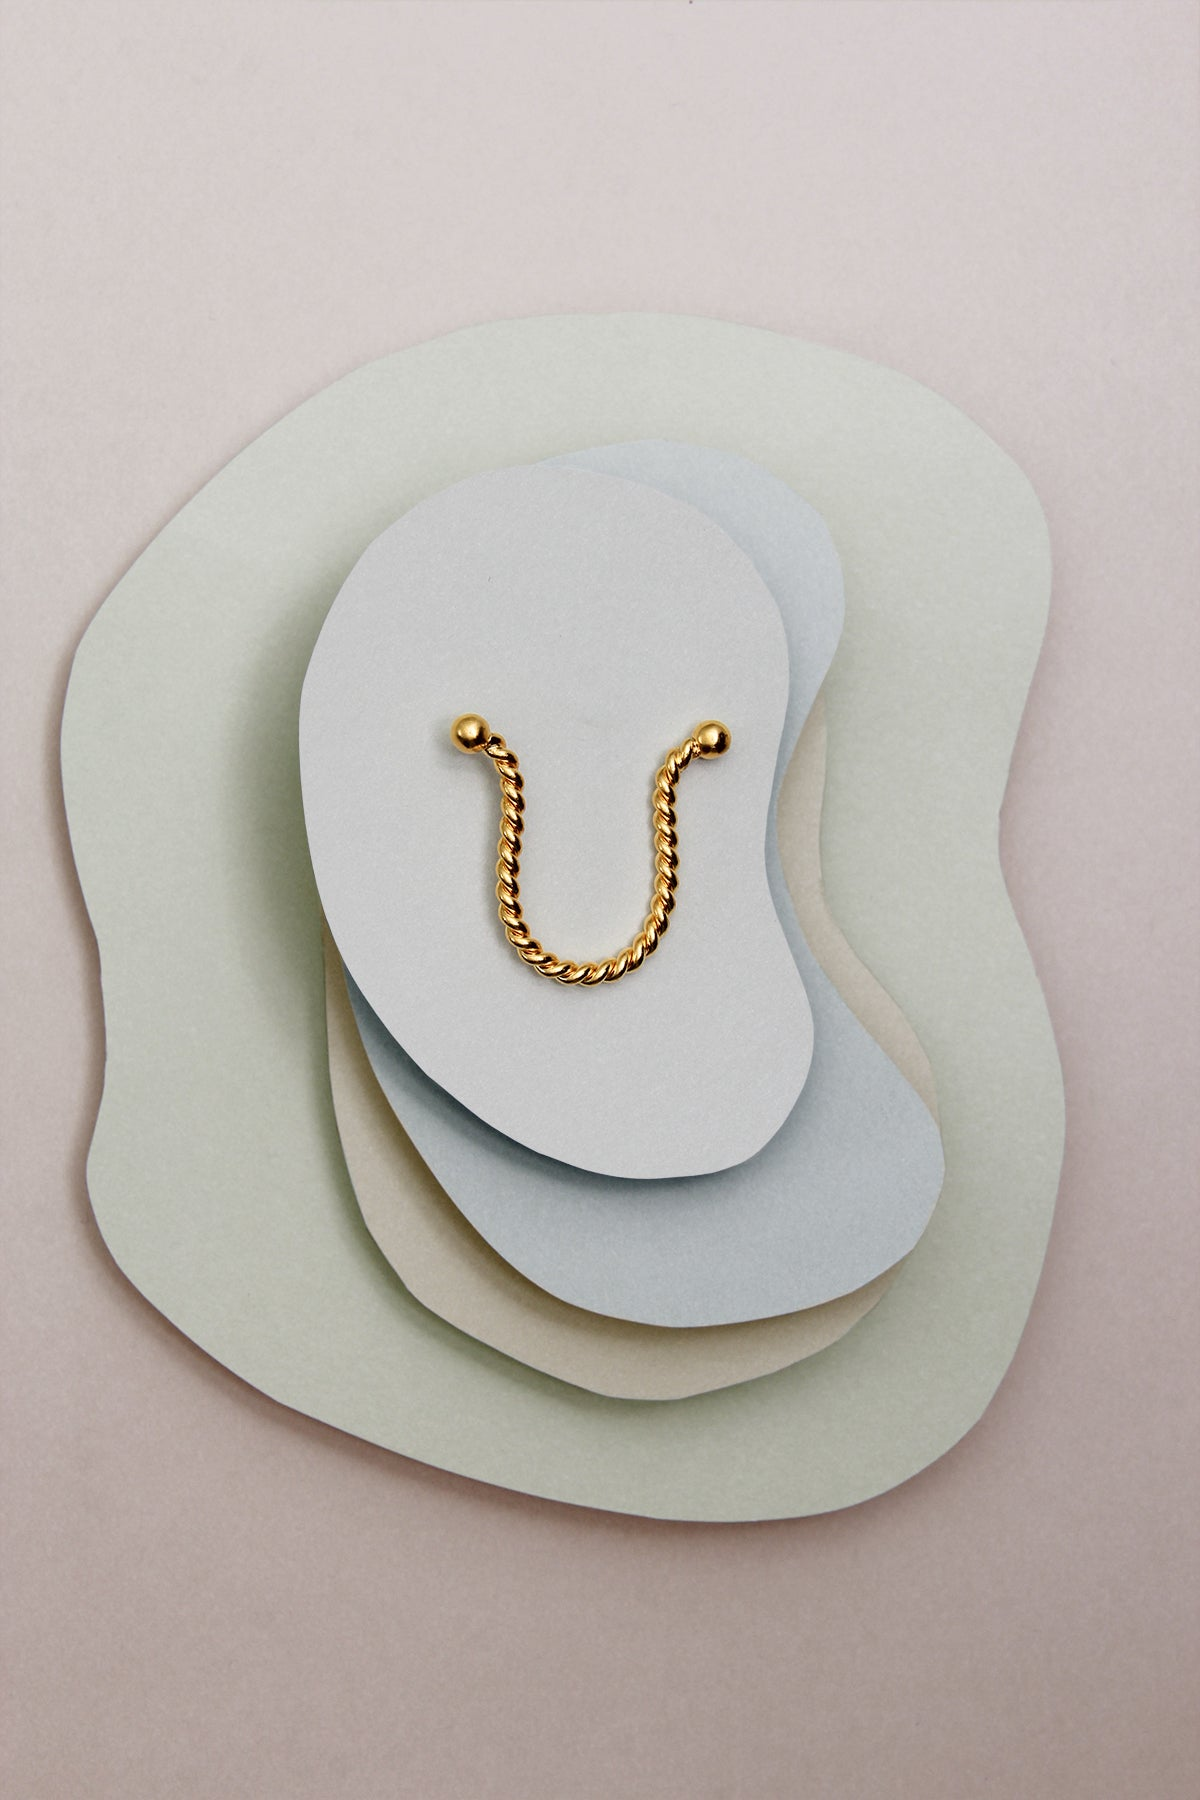 THE INITIAL U NECKLACE